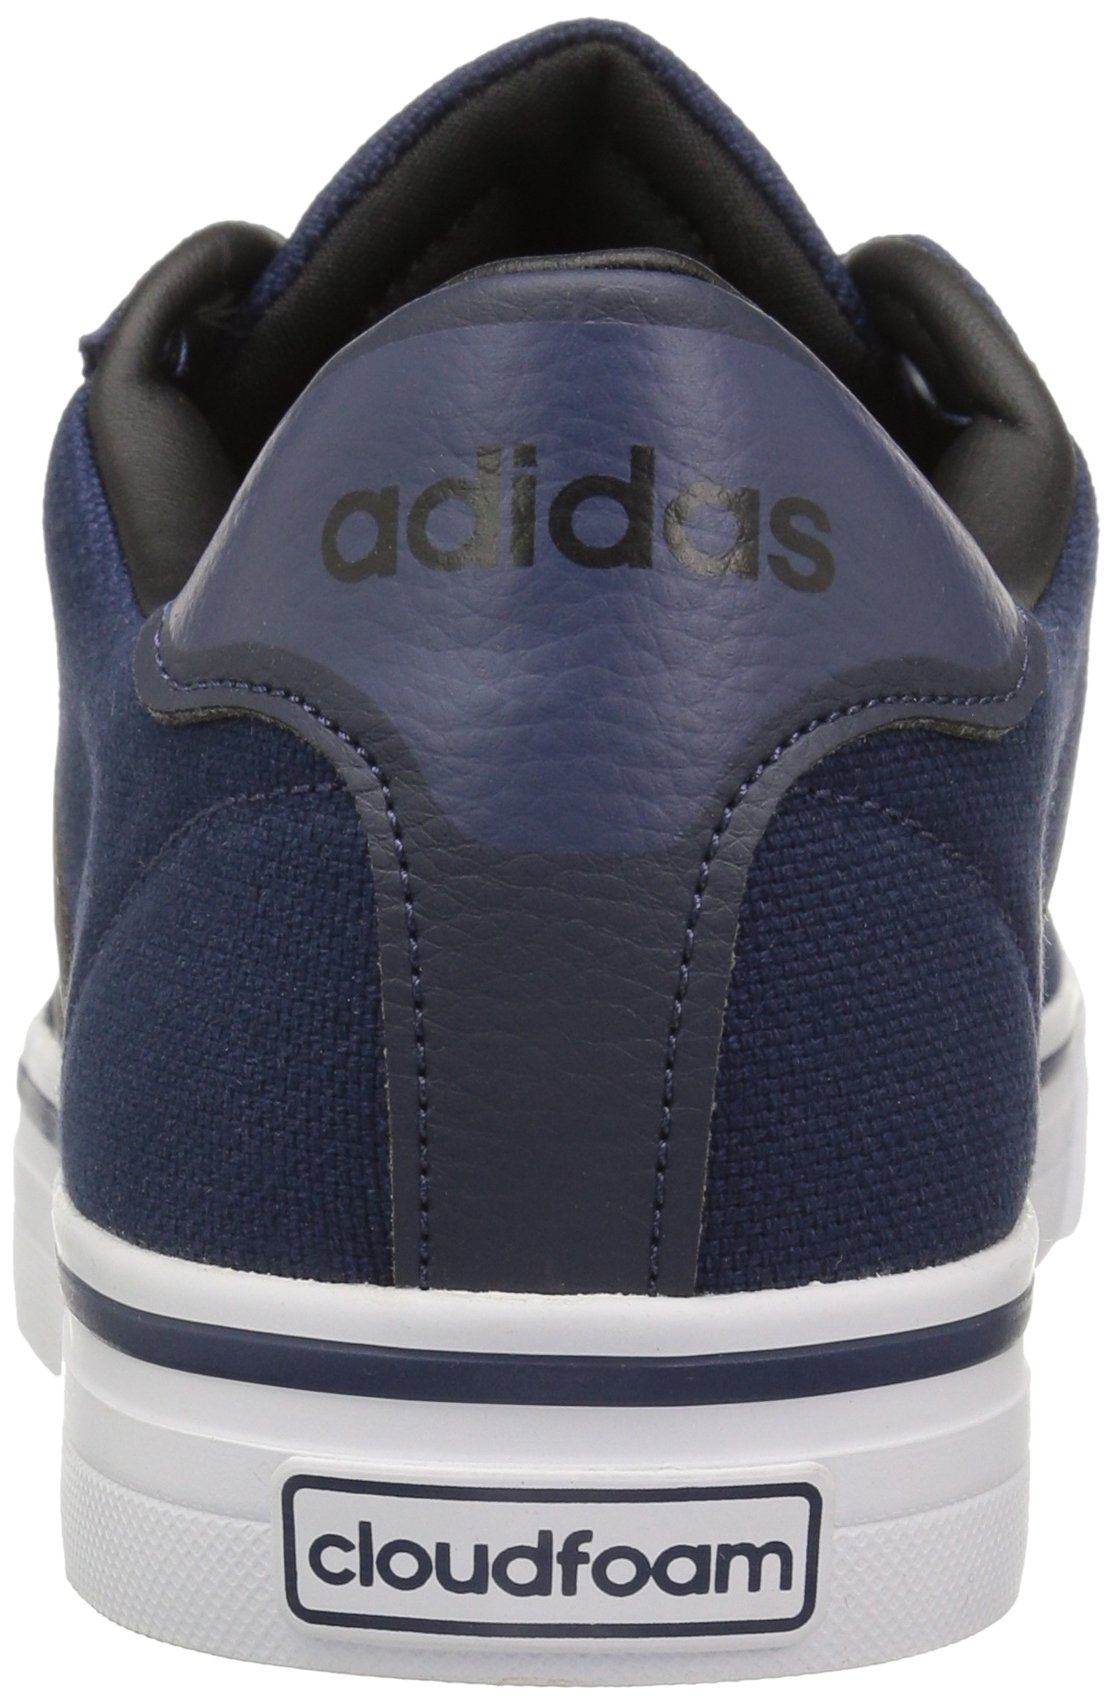 bdf22b220 adidas Men s Cloudfoam Super Daily Sneakers